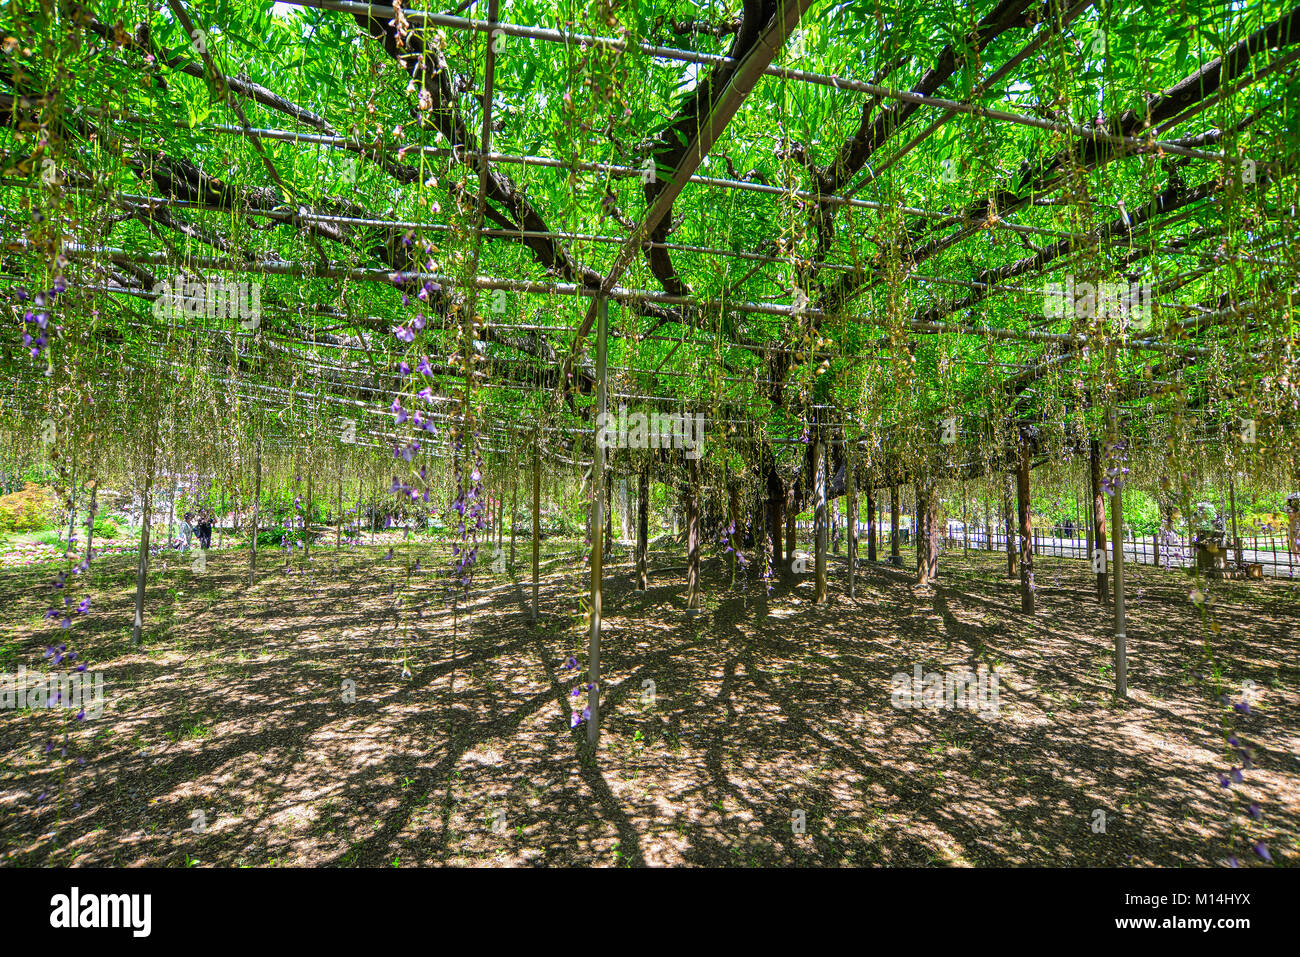 Great Wisteria tree at flower park in Tochigi, Japan. - Stock Image